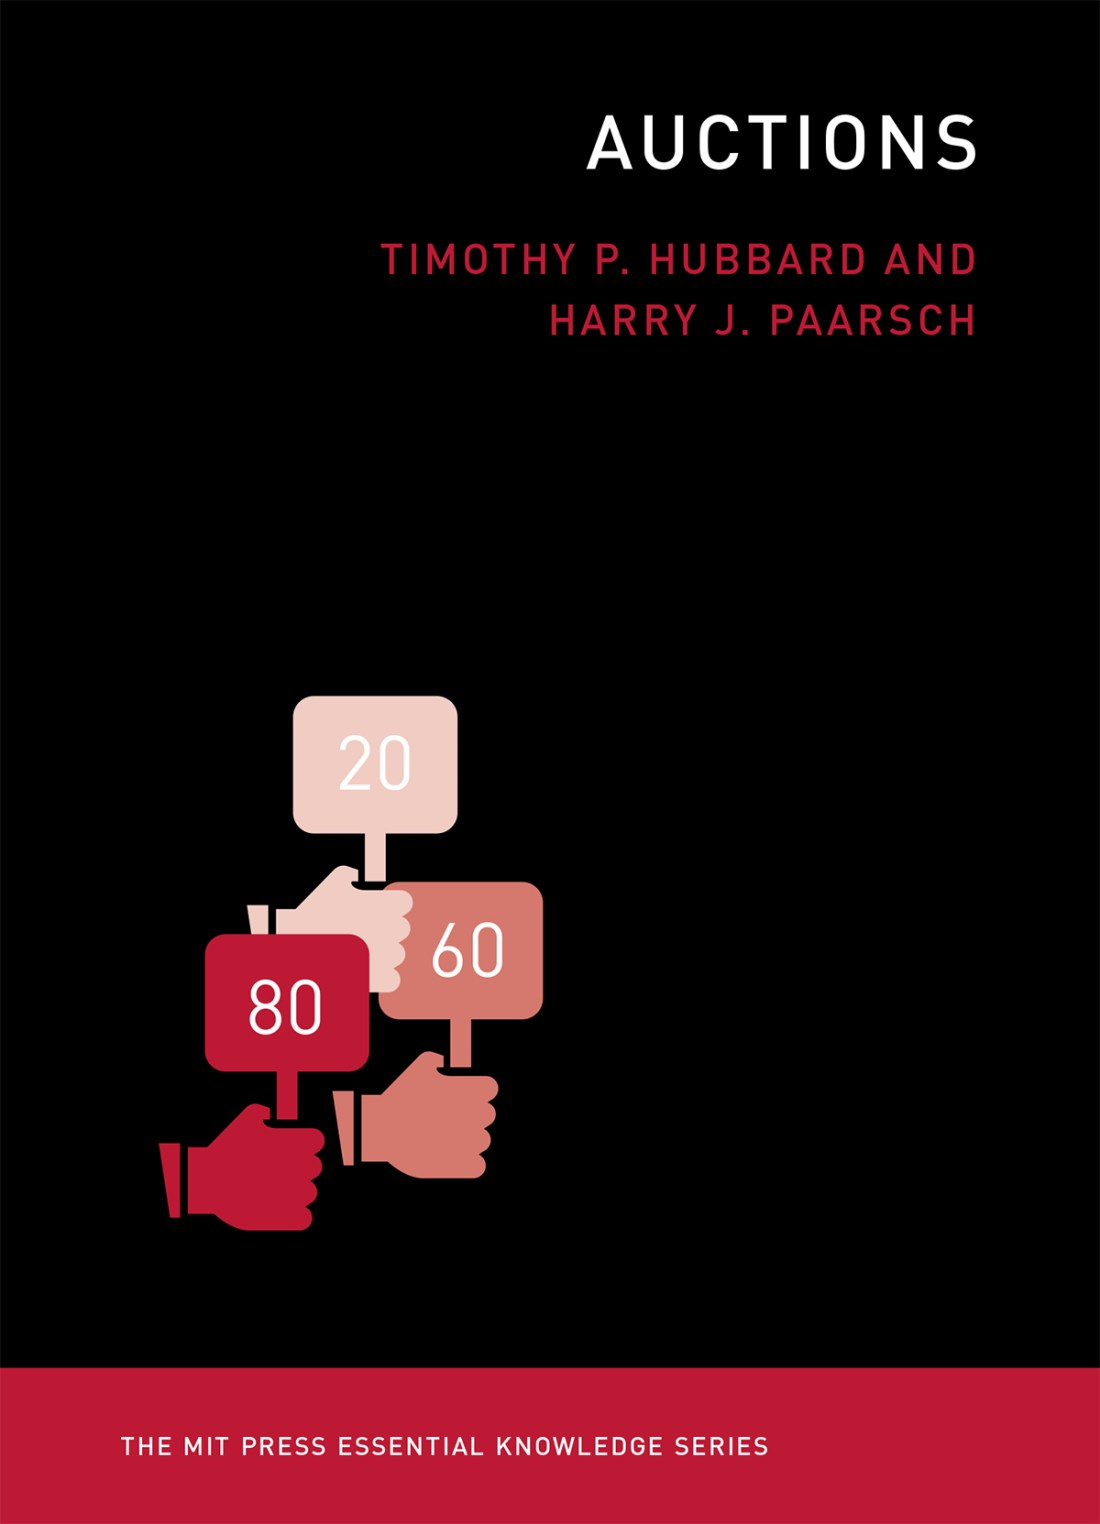 The cover of Auctions, a book from the MIT Press Essential Knowledge series. It has a black background and three hands holding bidding paddles.